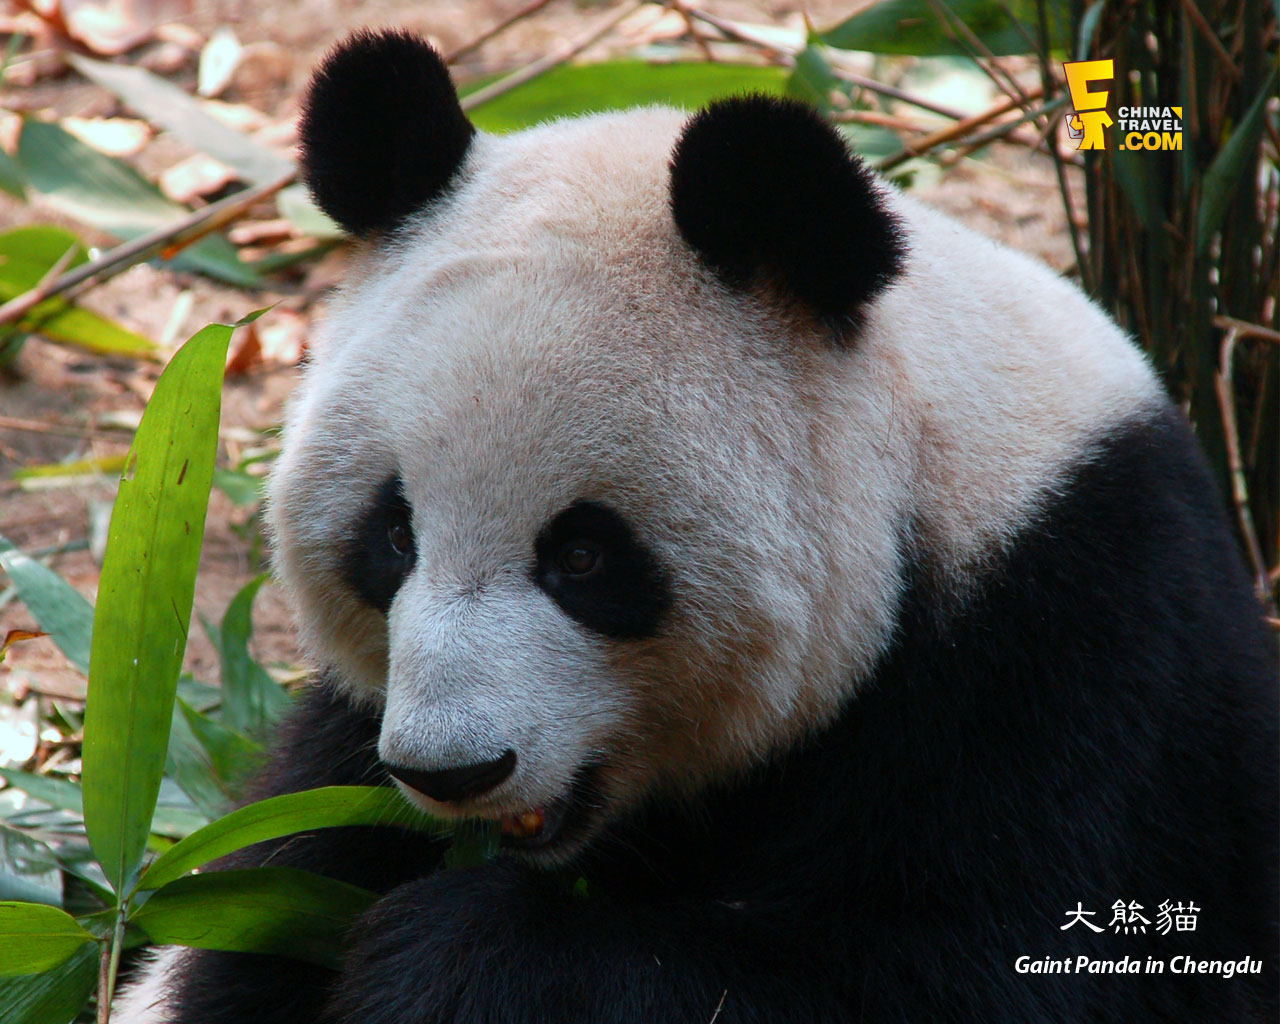 a background on the giant panda Download 1,959 panda background stock photos for free or amazingly low rates new users enjoy 60% off 80,498,661 stock photos online.